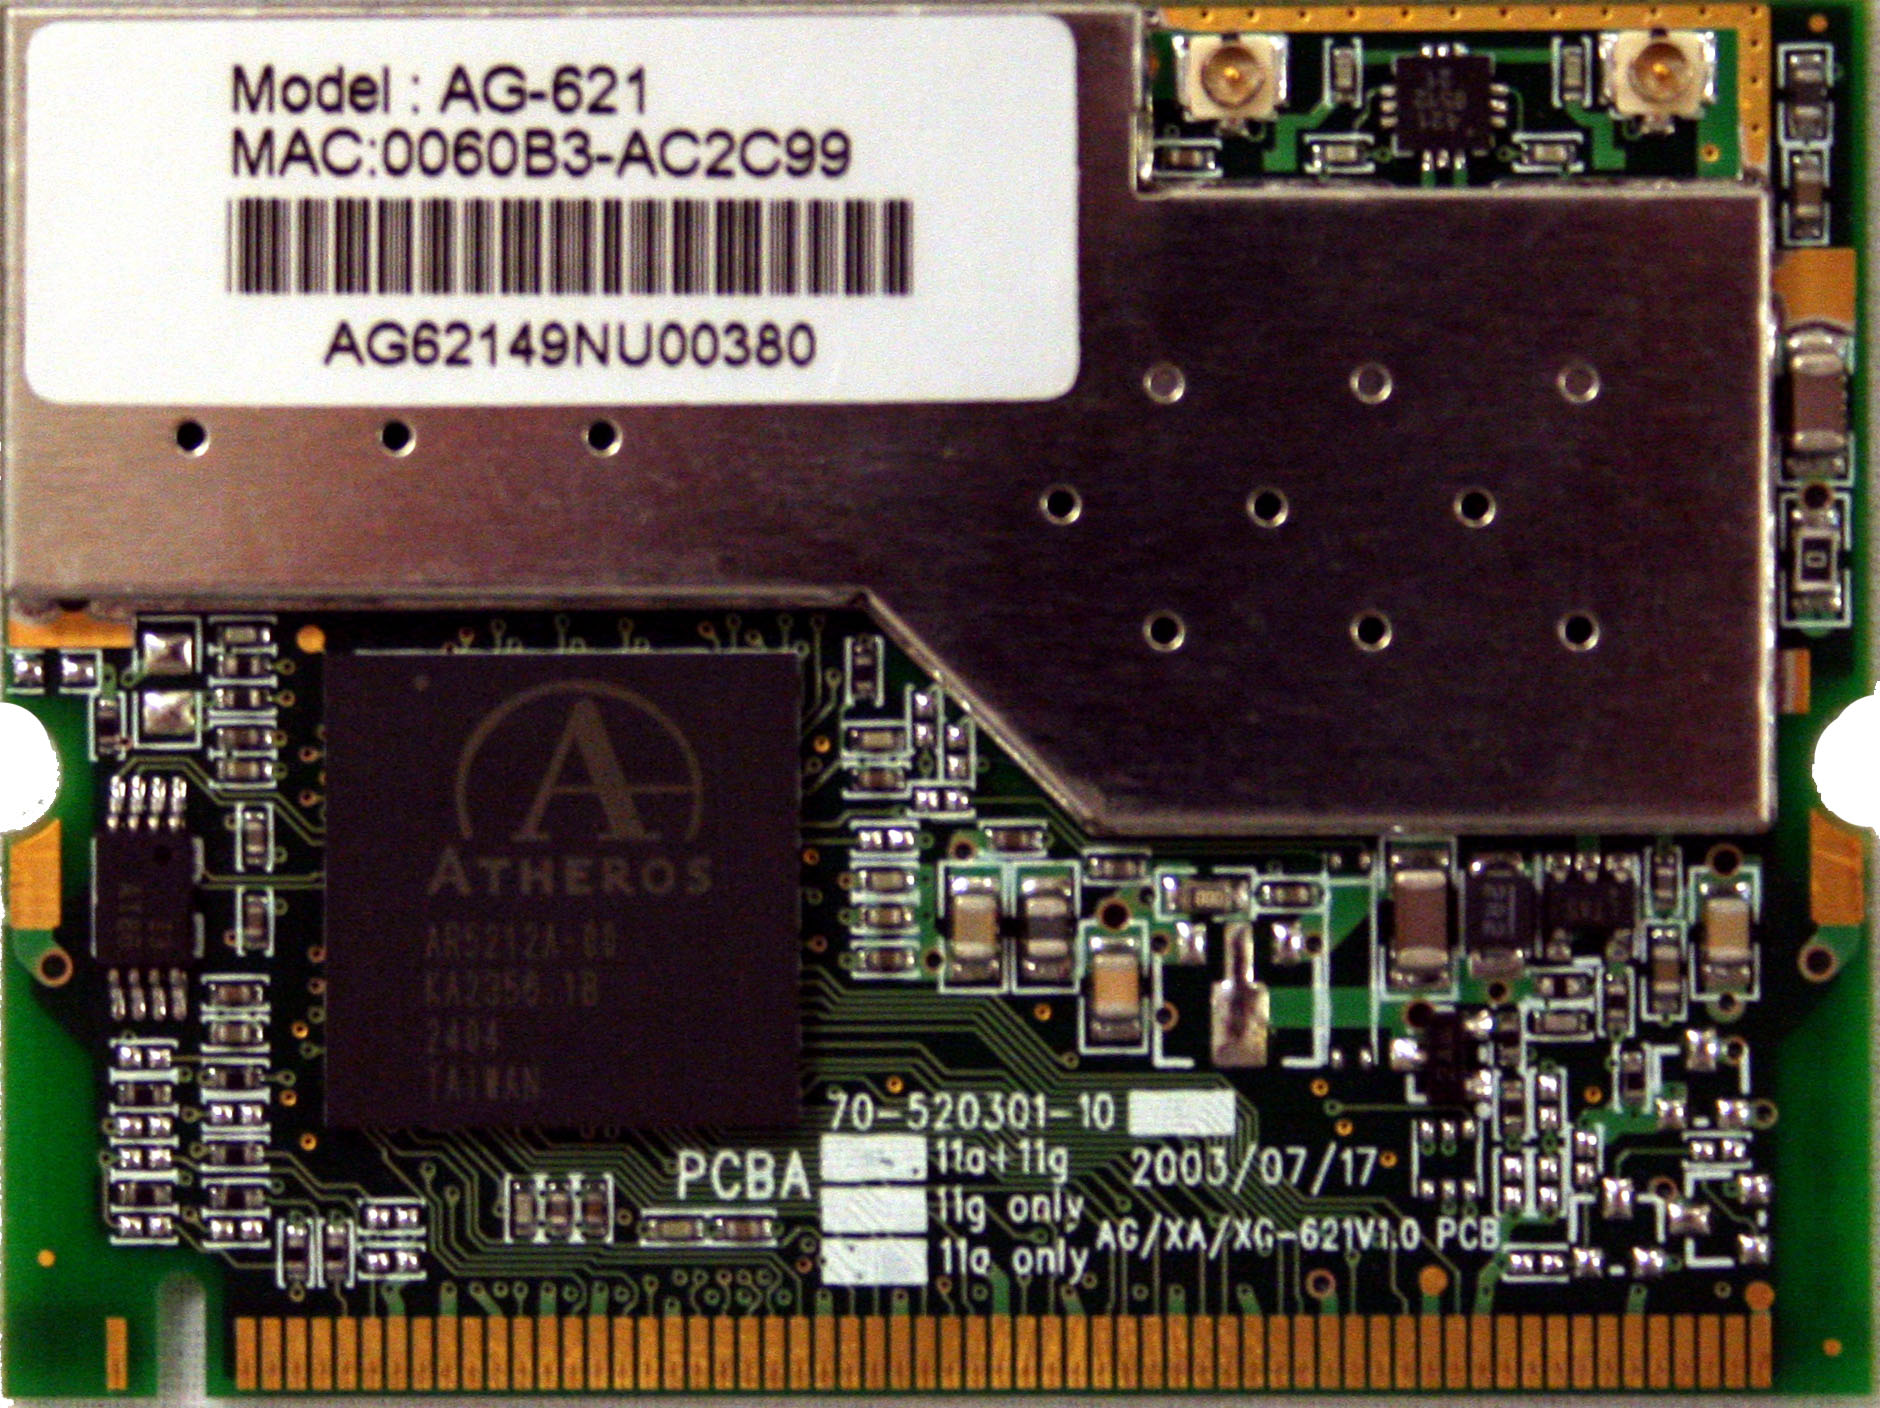 Atheros 5002 mini-PCI card